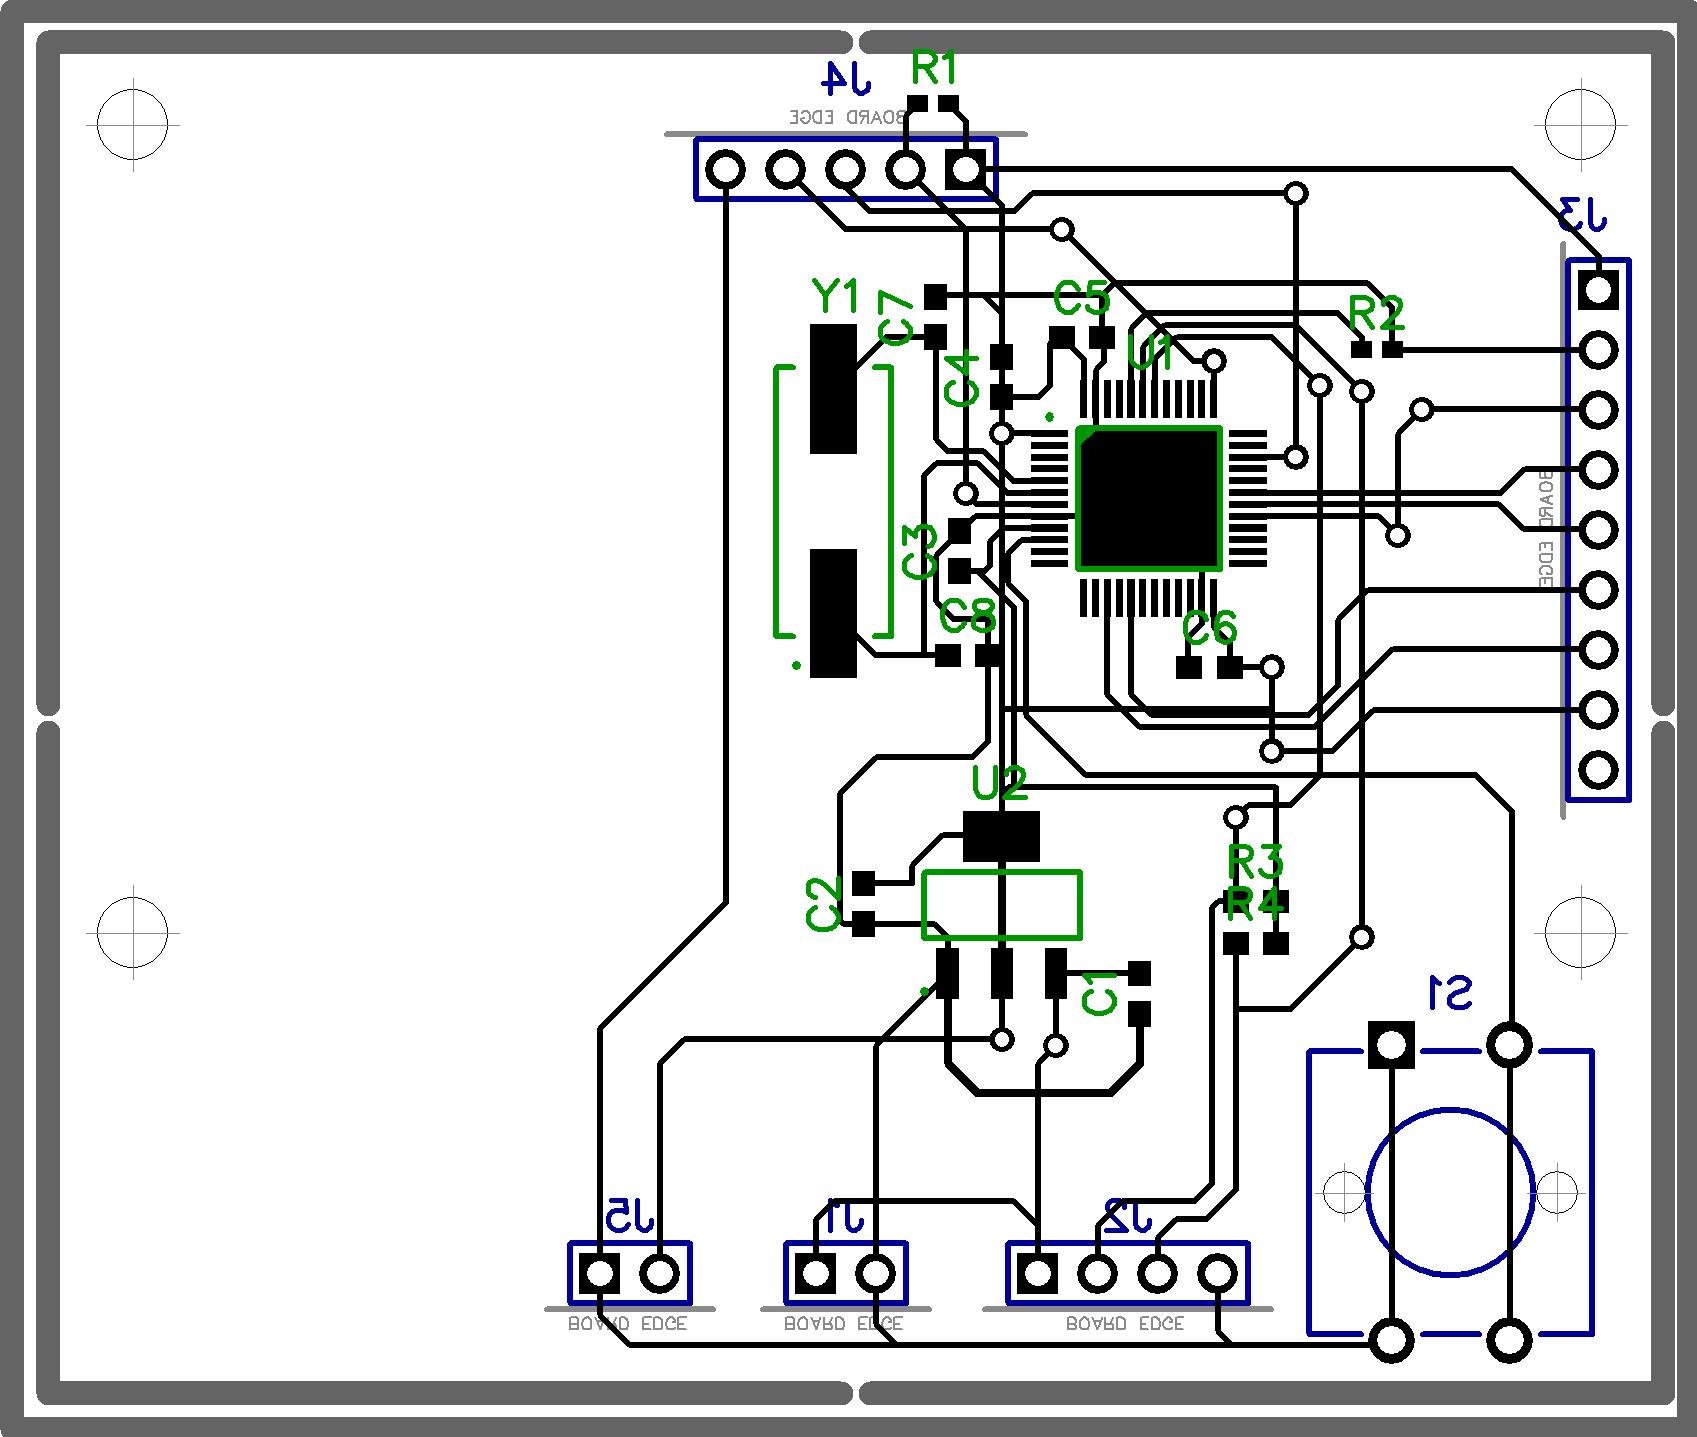 LIDAR board layout